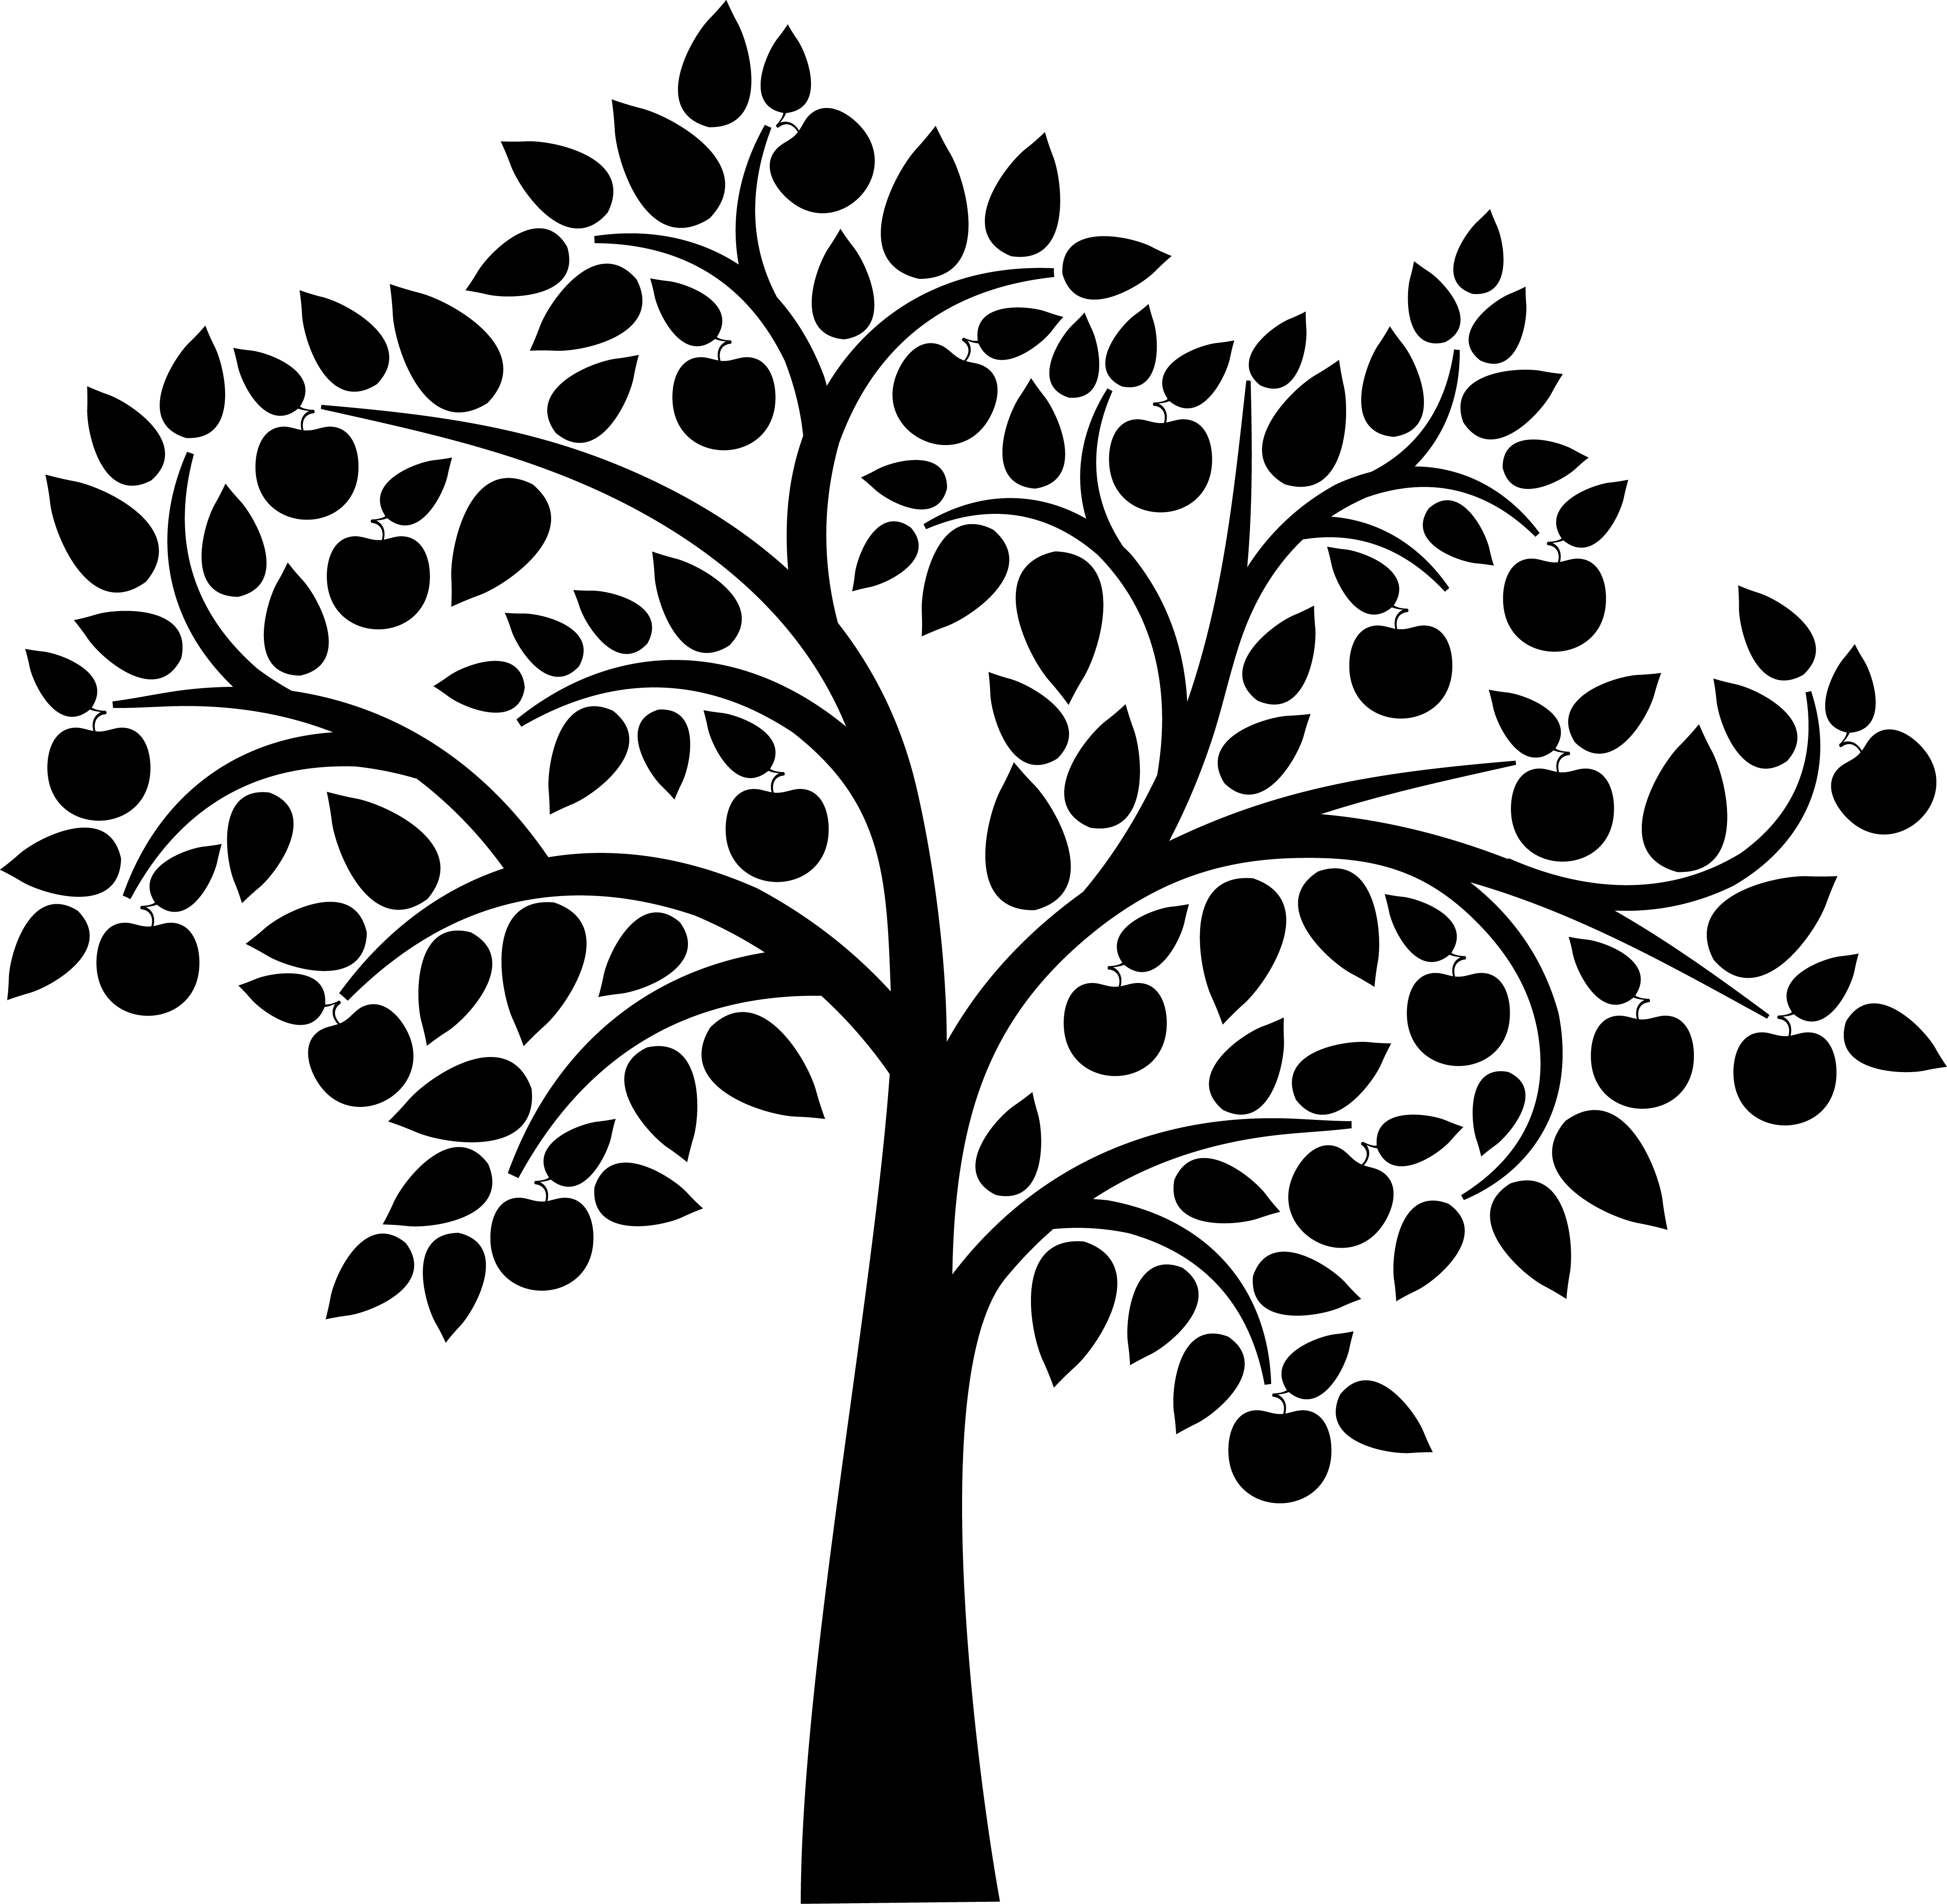 bird tree drawing at getdrawings com free for personal use bird